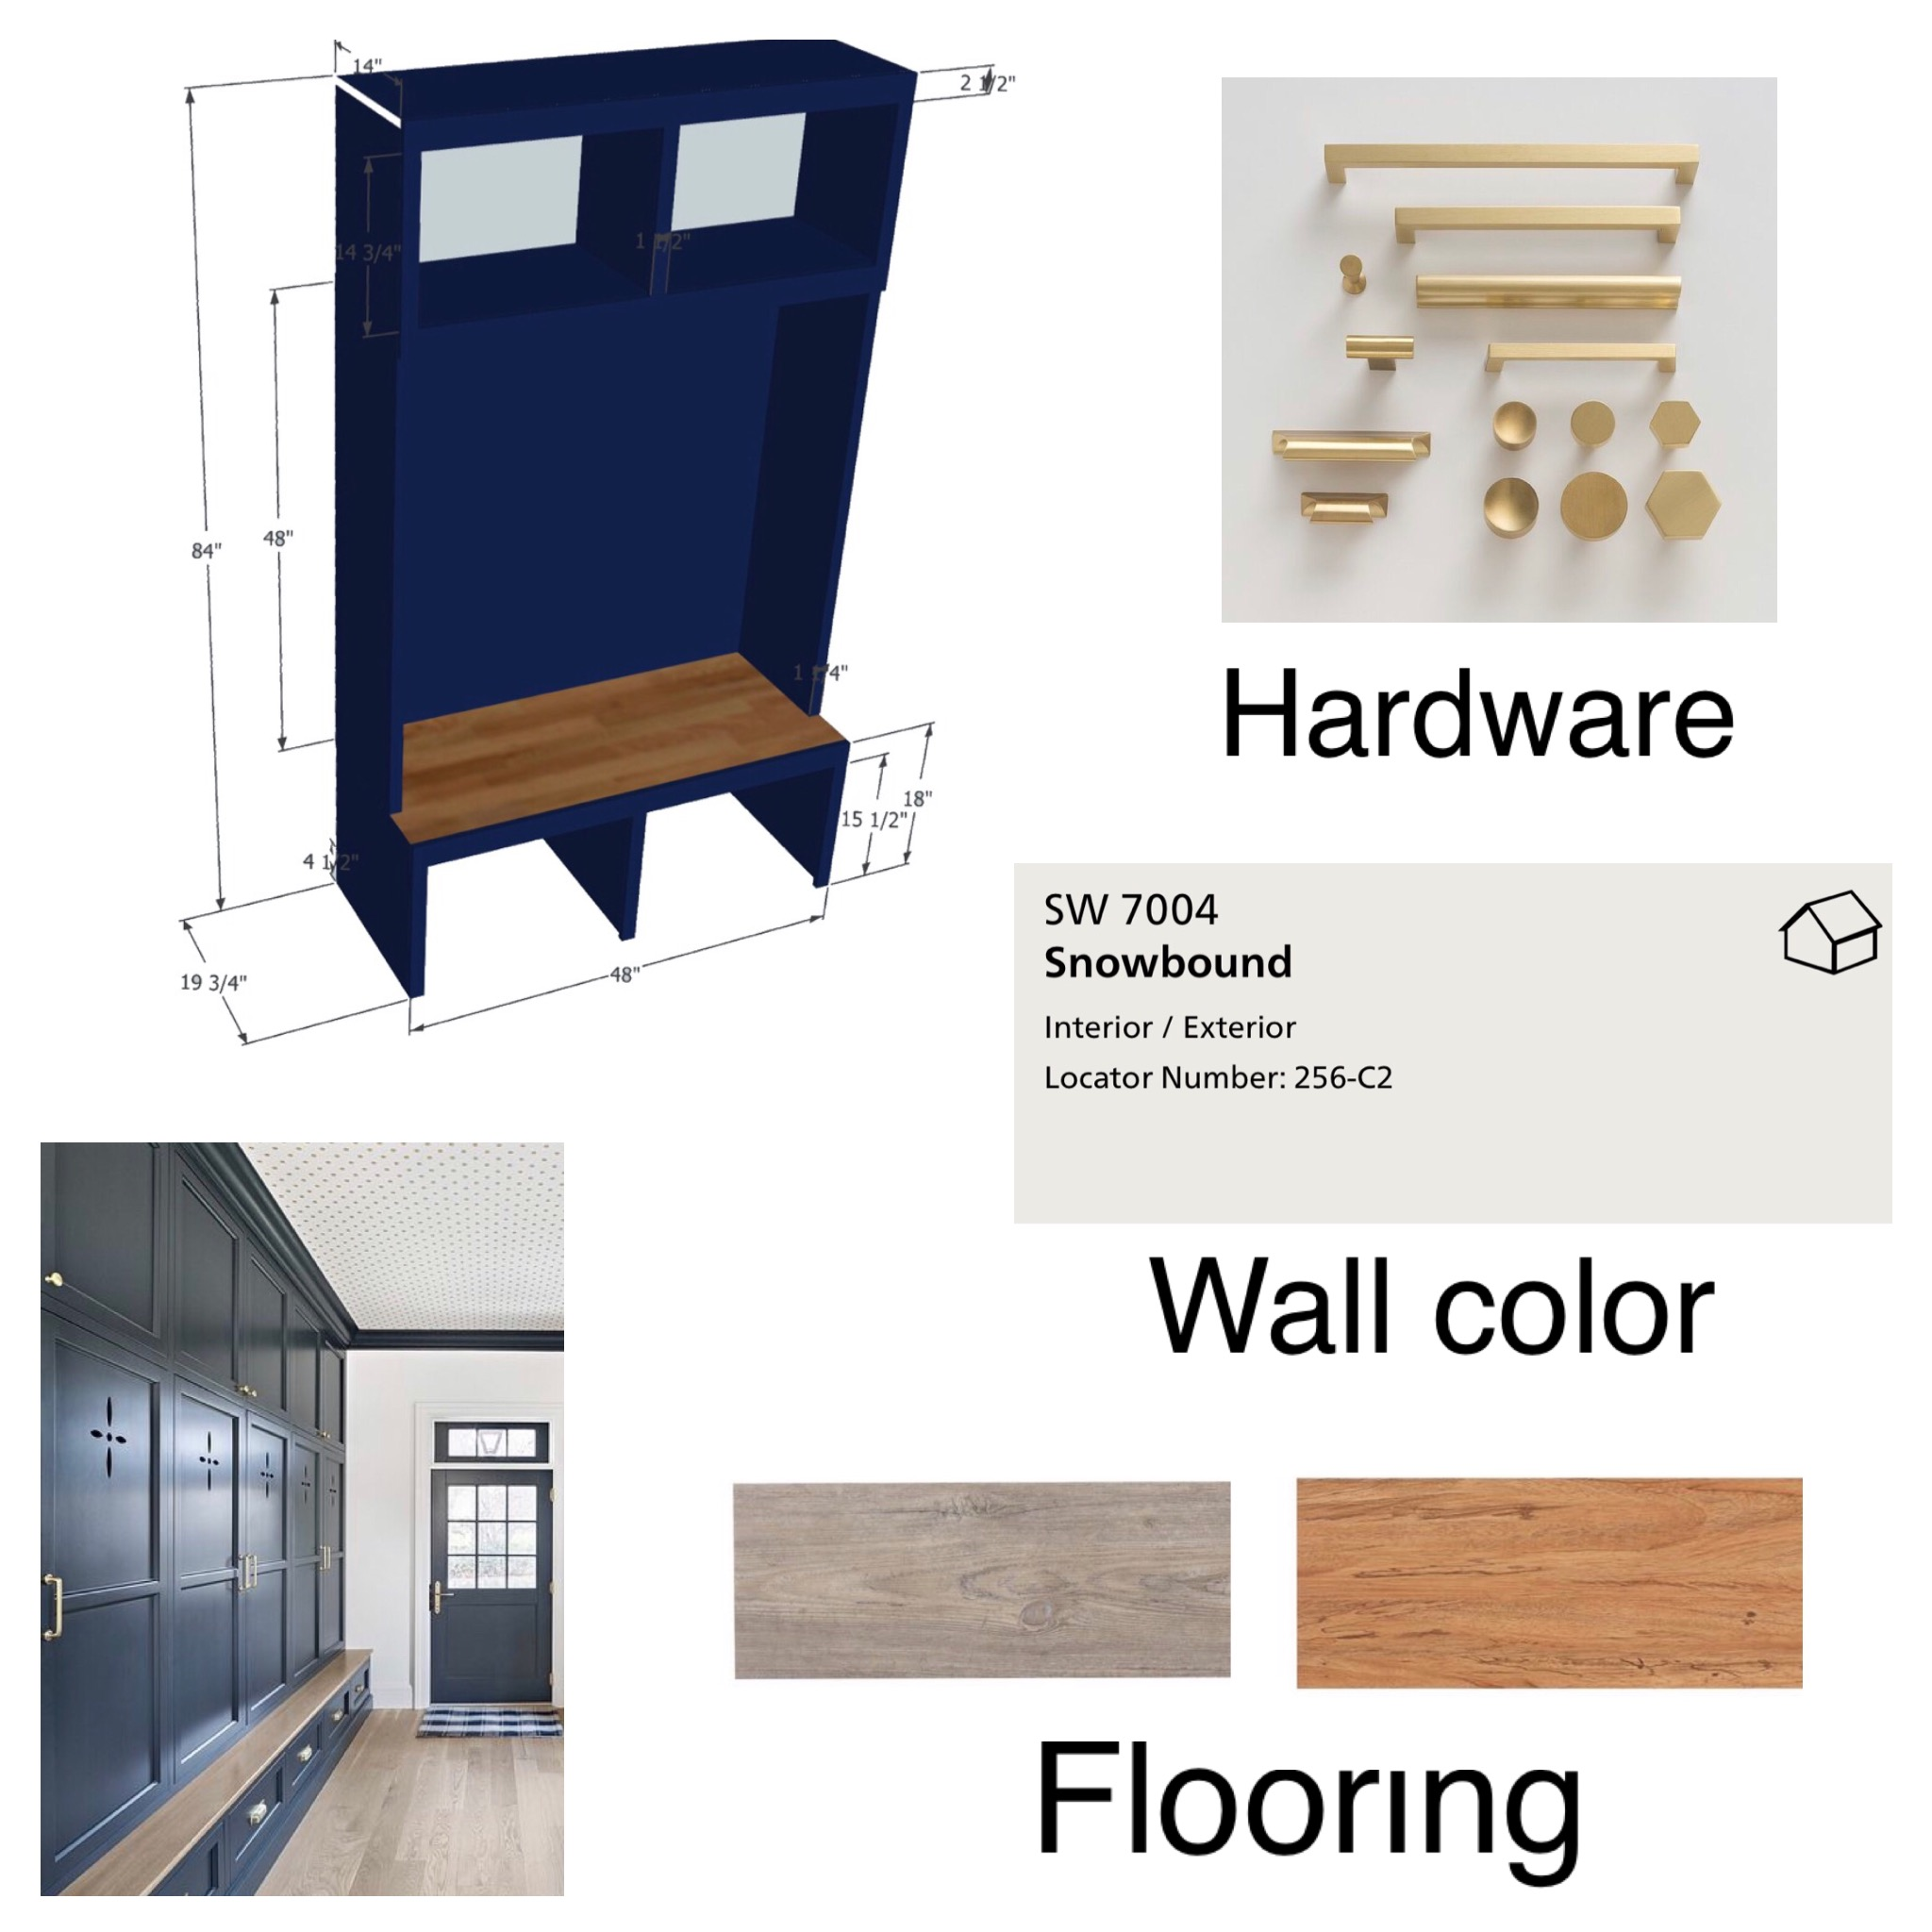 mudroom design board interior designer Manhattan, ks